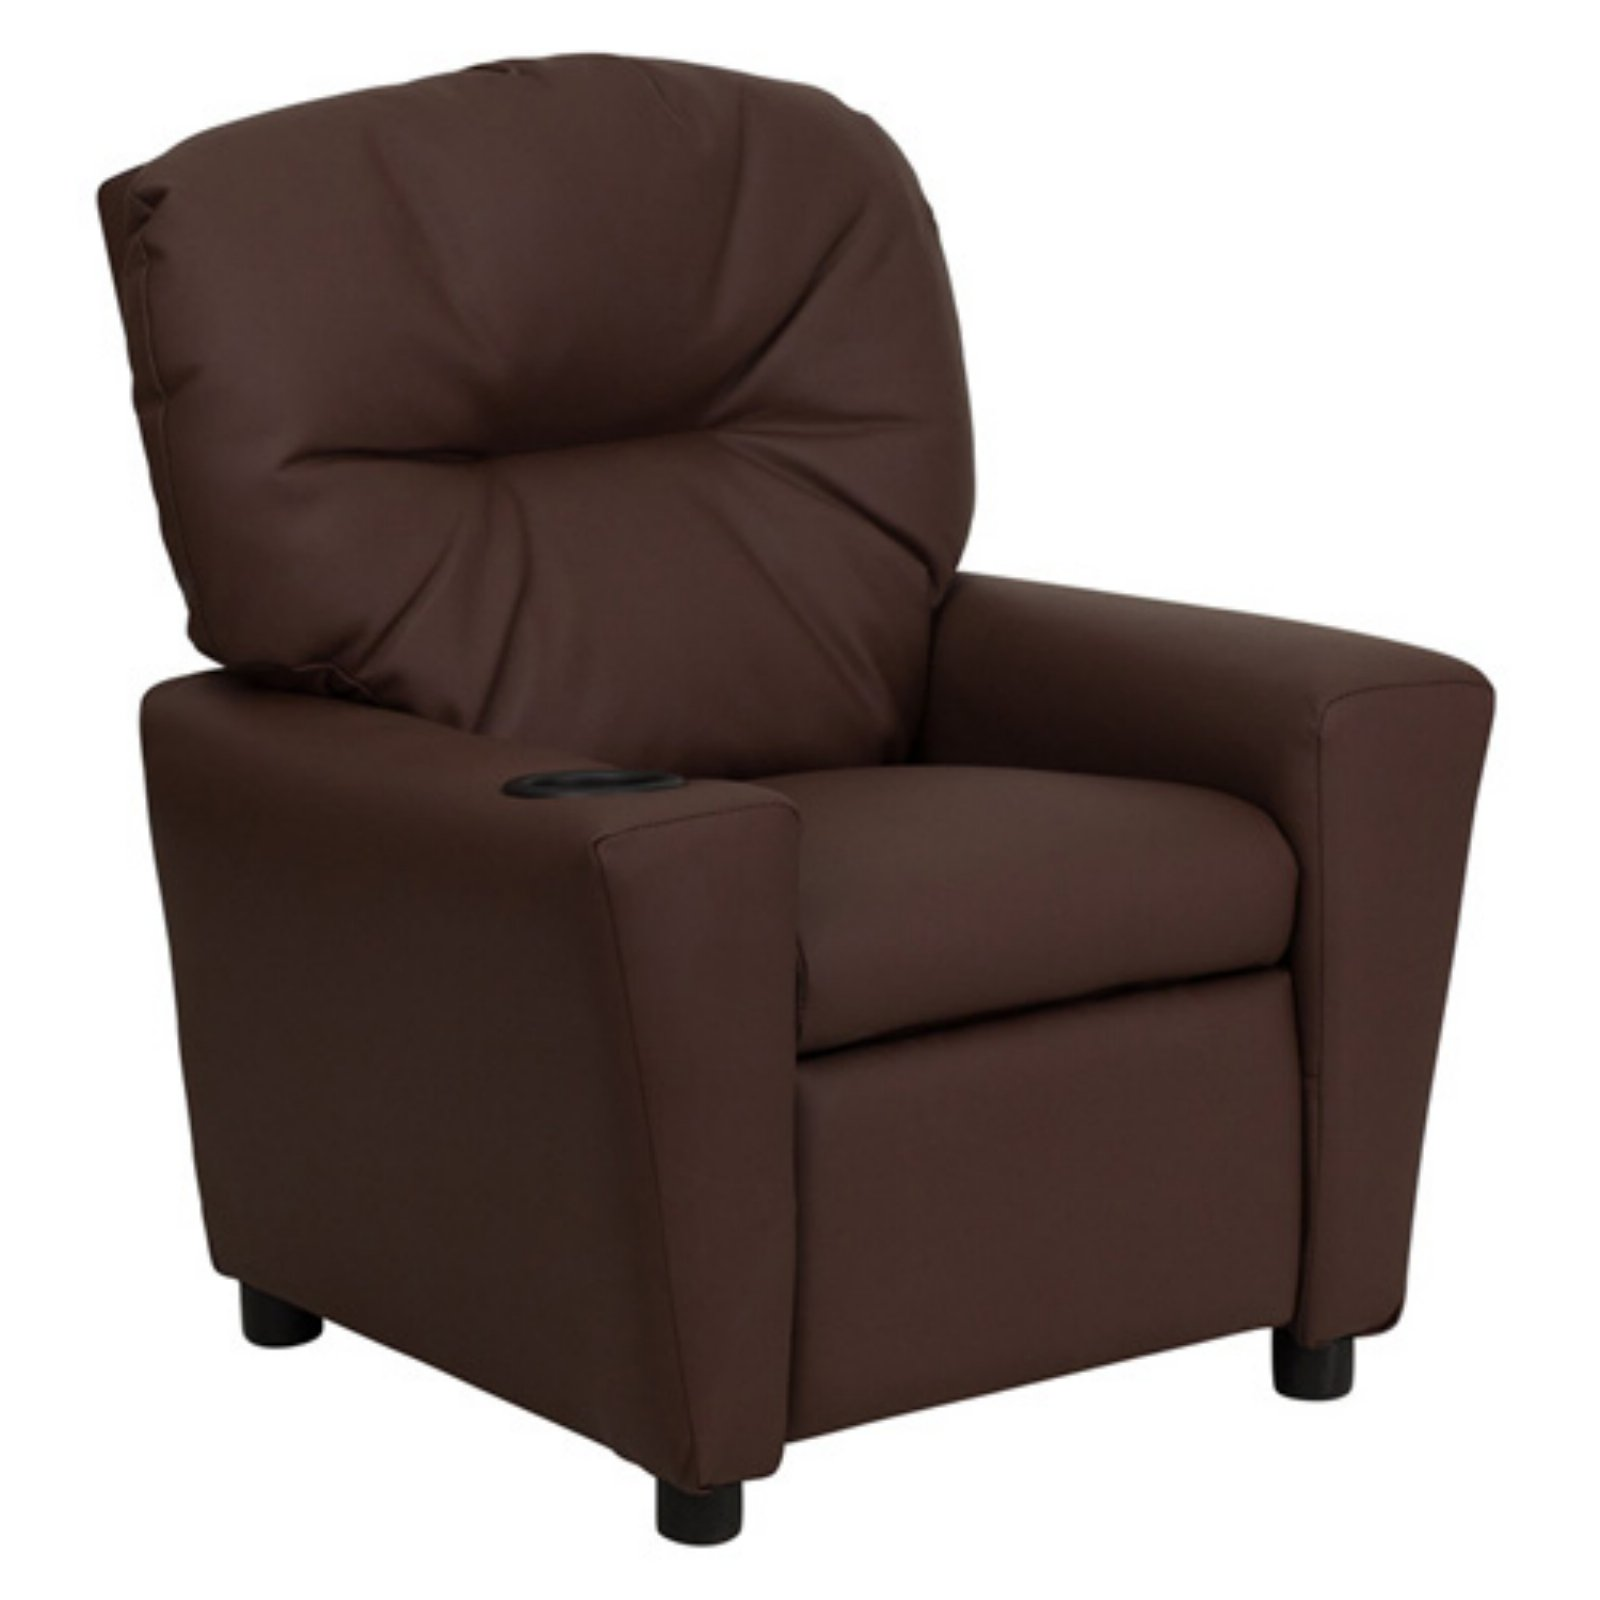 Flash Furniture Kid' Recliner with Cup Holder, Brown Leather